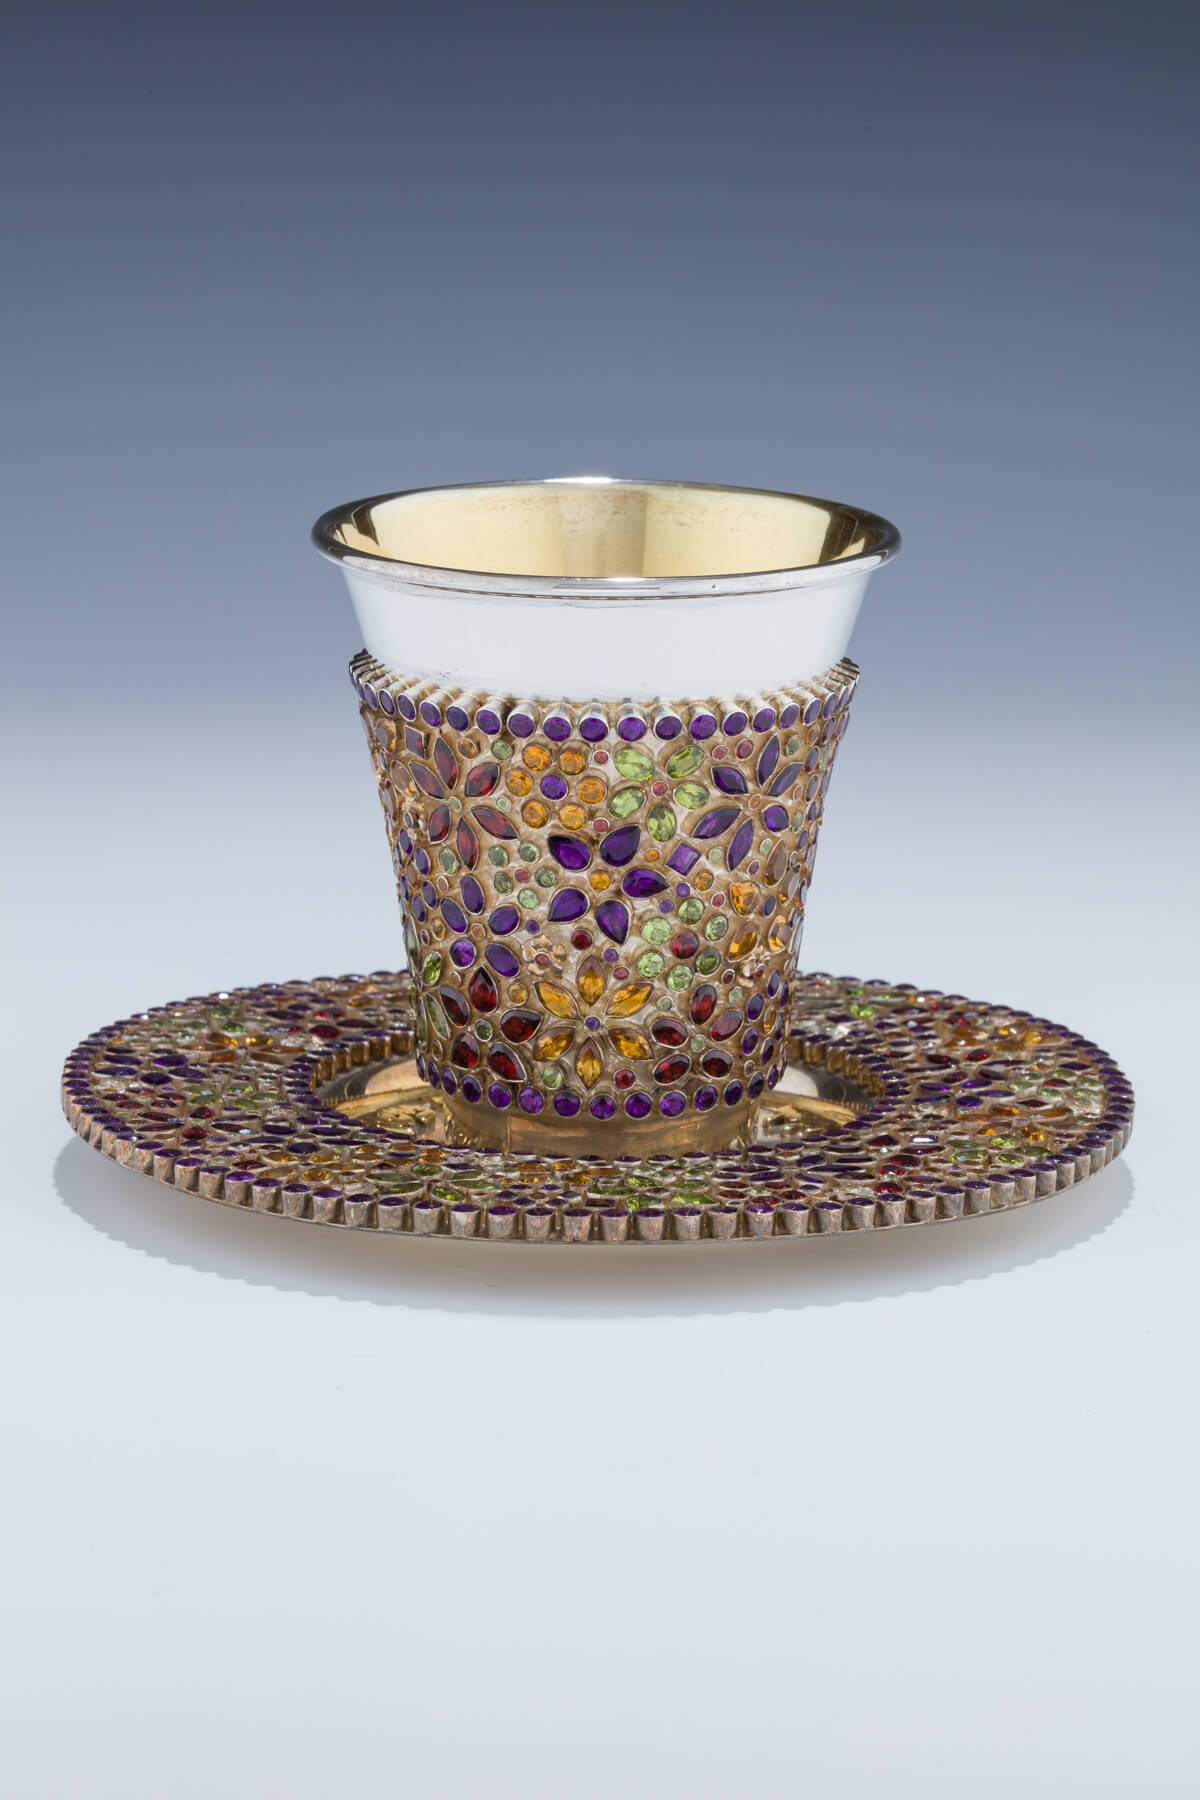 142.  A Gem Encrusted Kiddush Cup and Underplate by Dekel Aviv